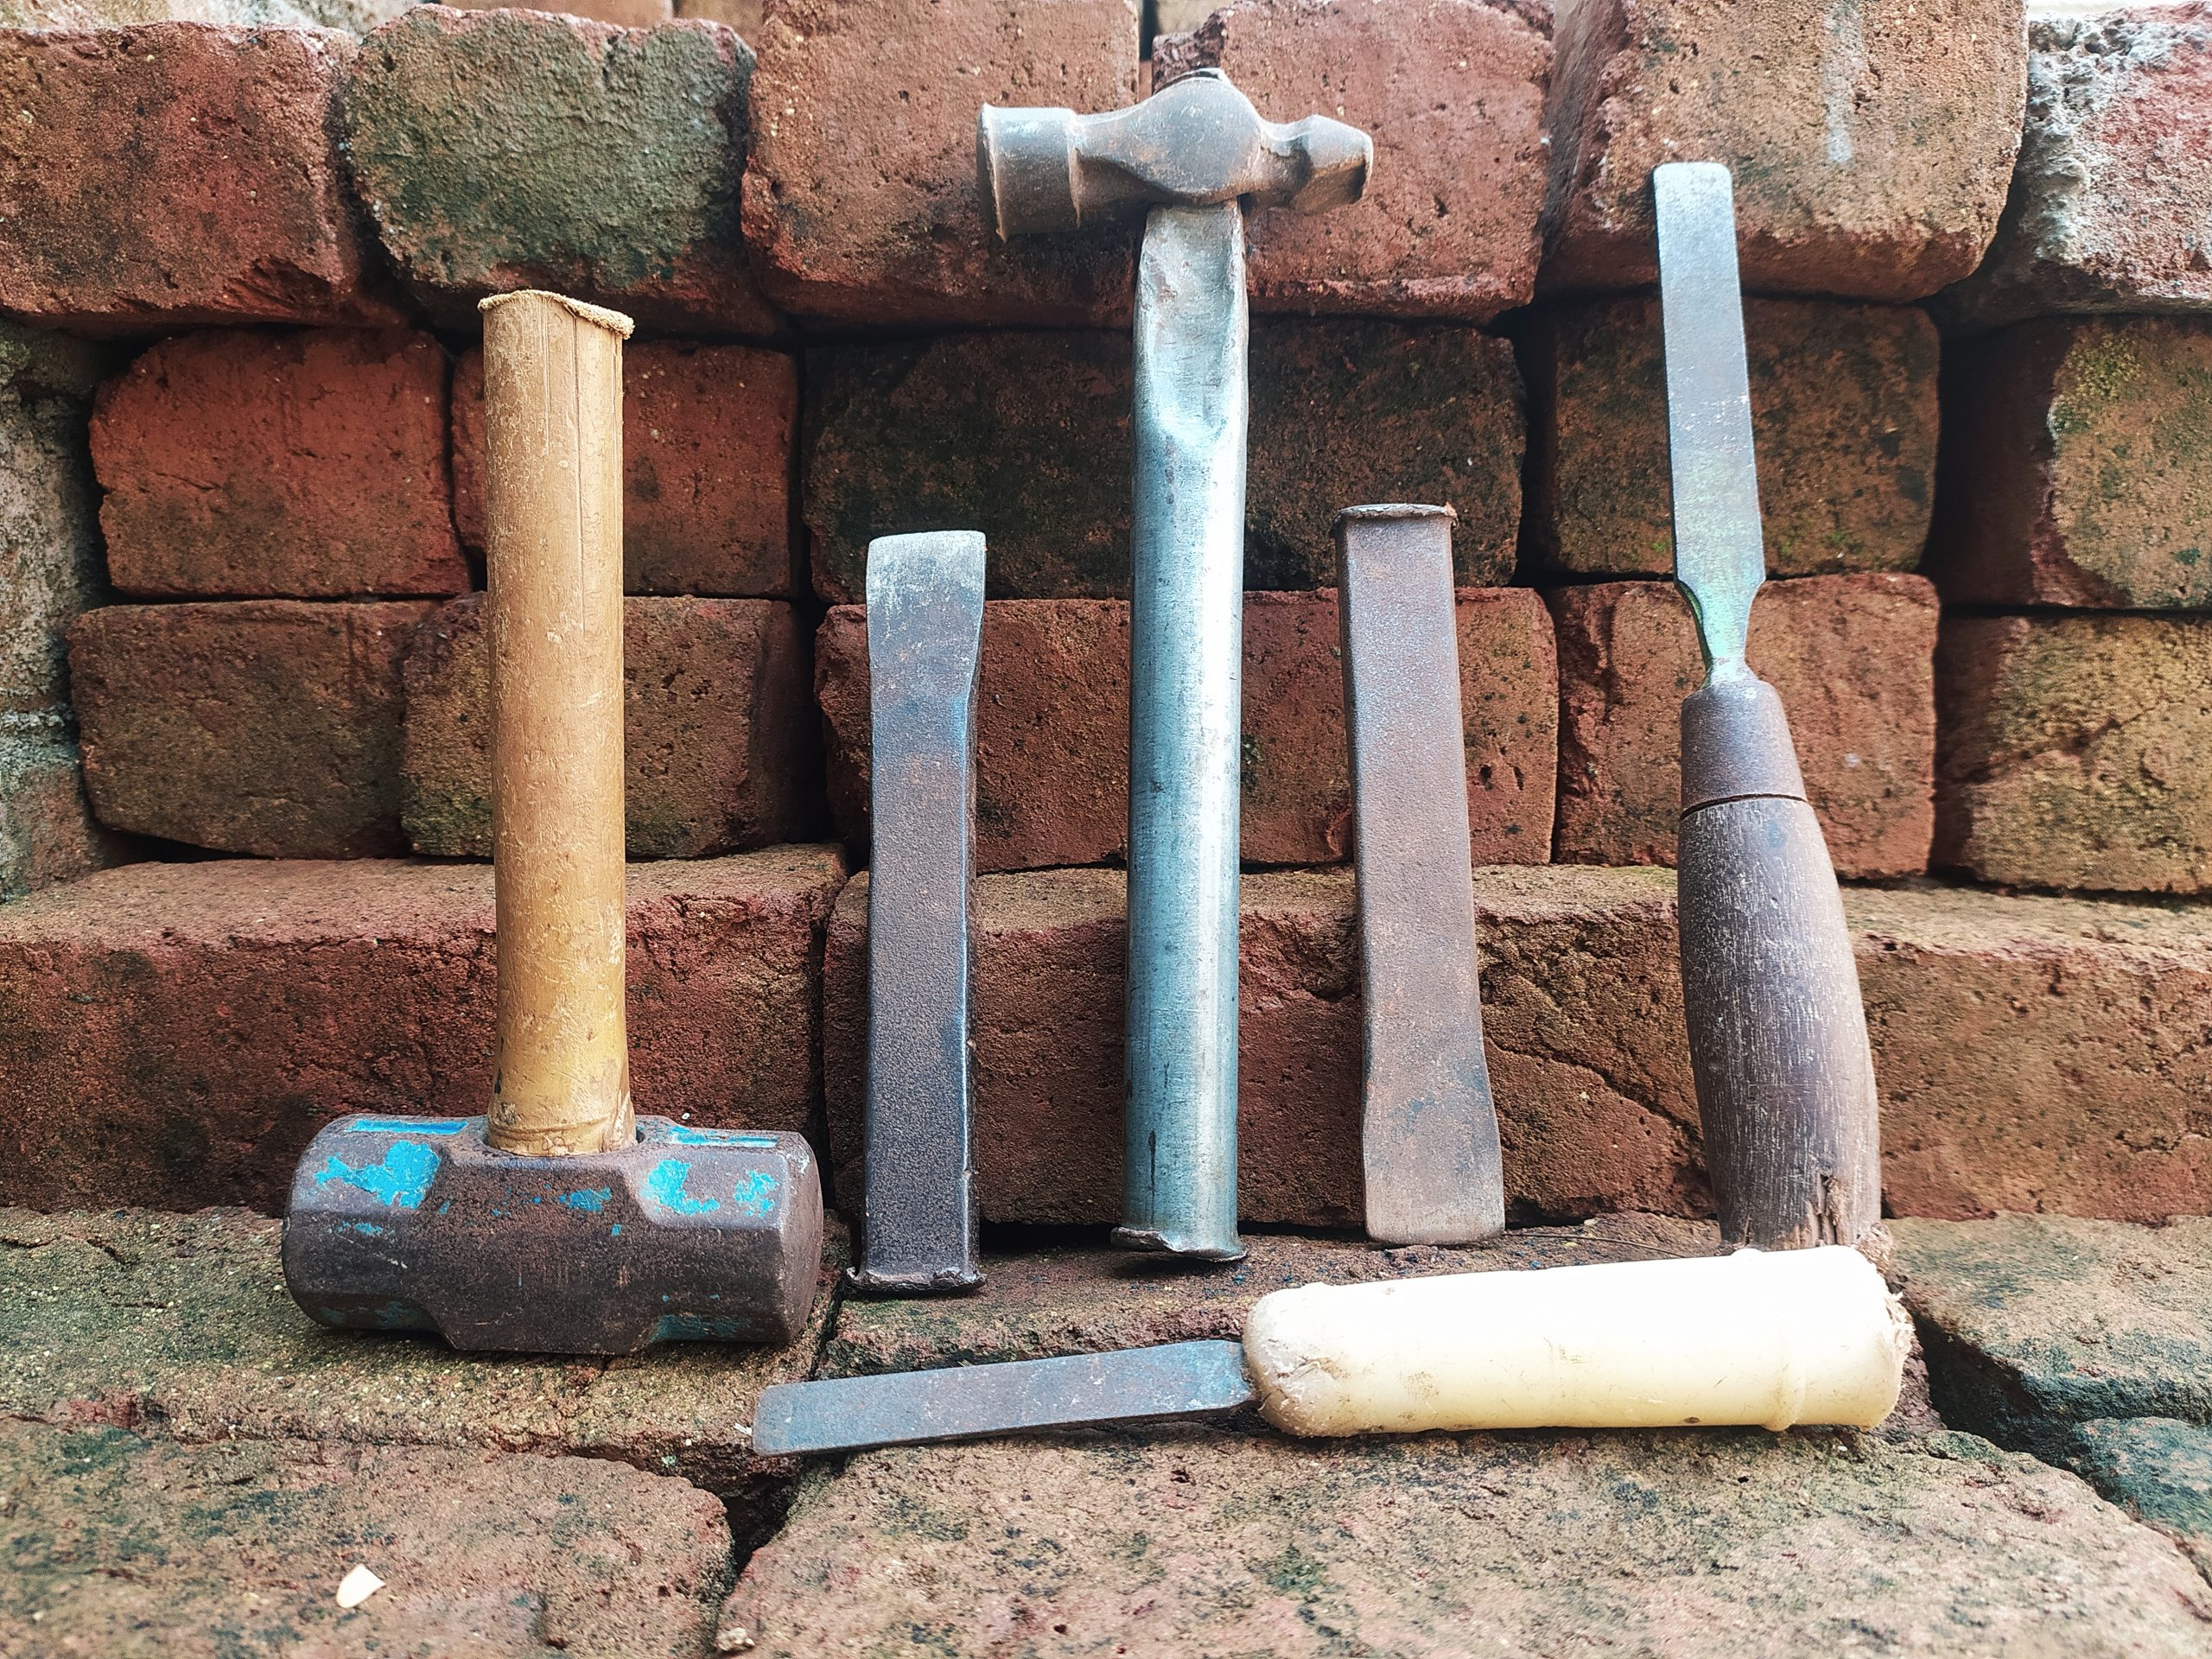 Tools of a plumber